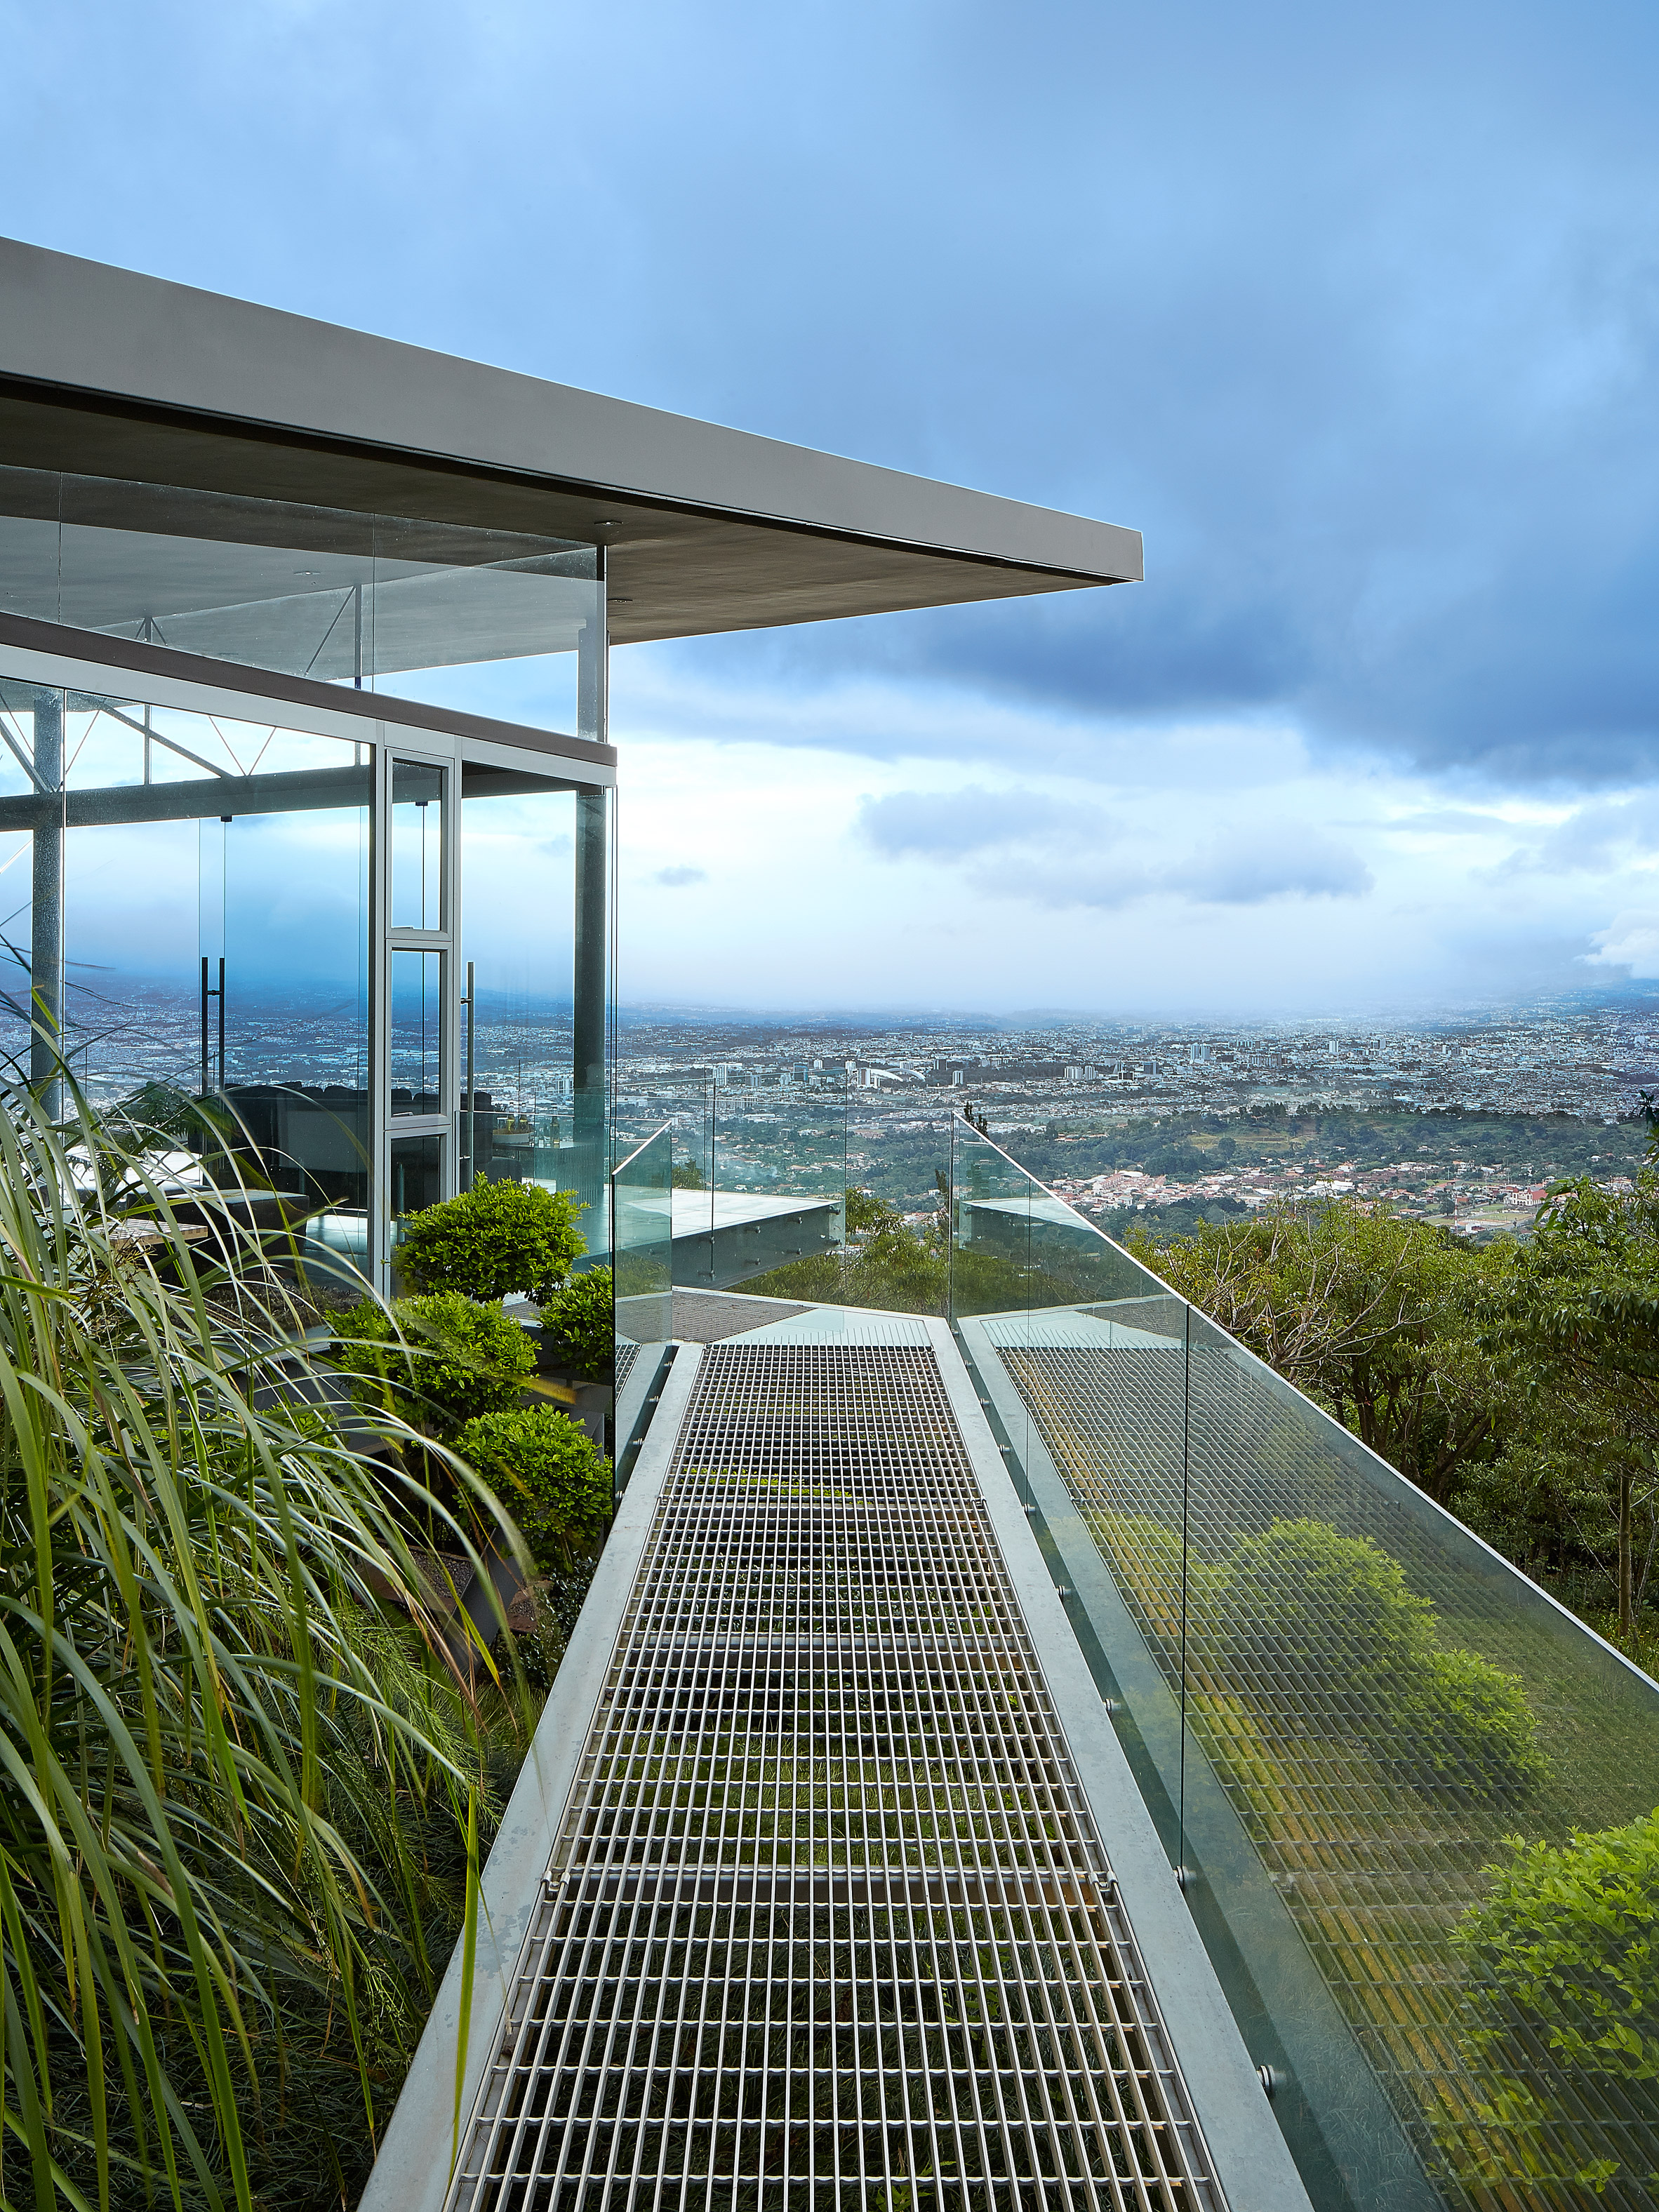 Steel and glass Costa Rican home by Cañas Arquitectos projects towards views of San Jose